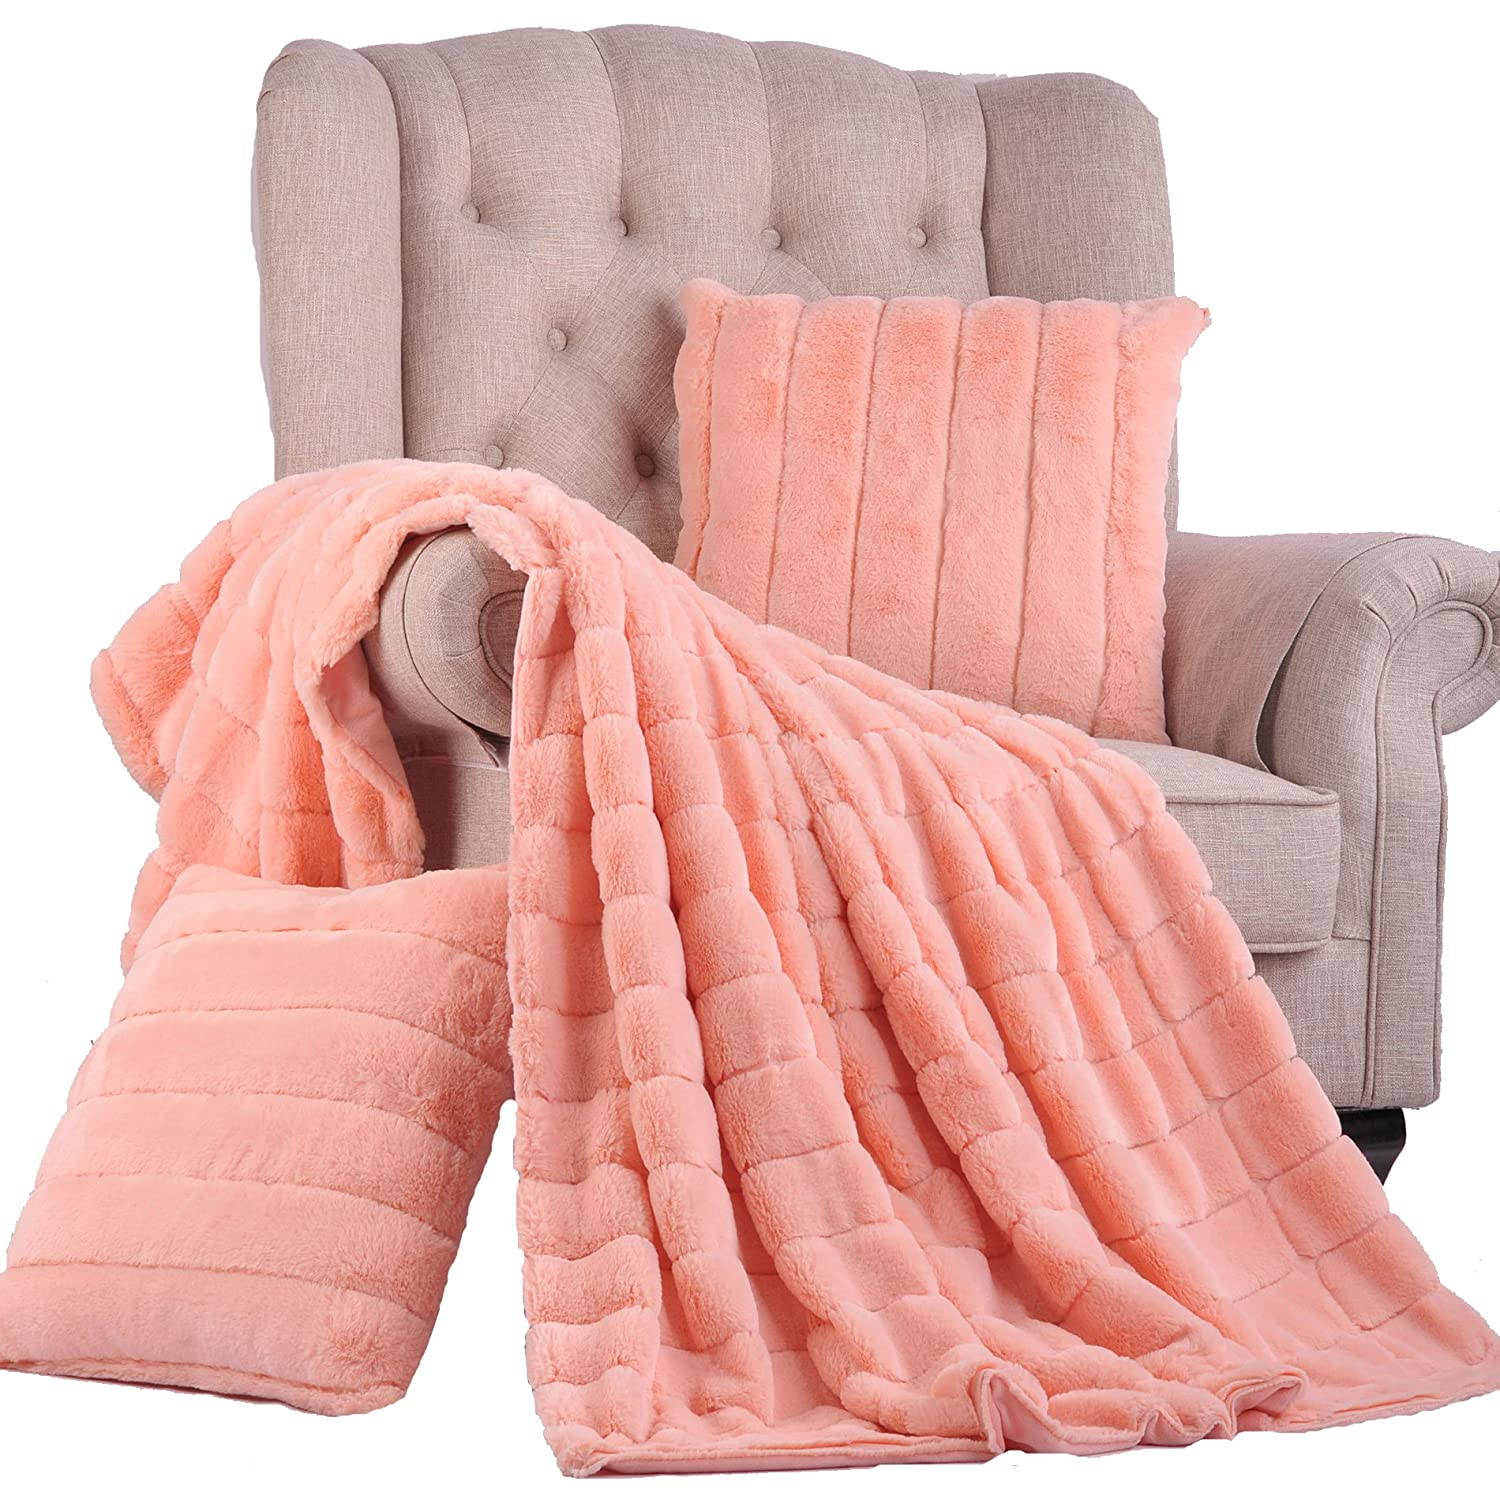 BOON Rabbit Fur Throw with 2 Pillow Combo Set Peach Echo